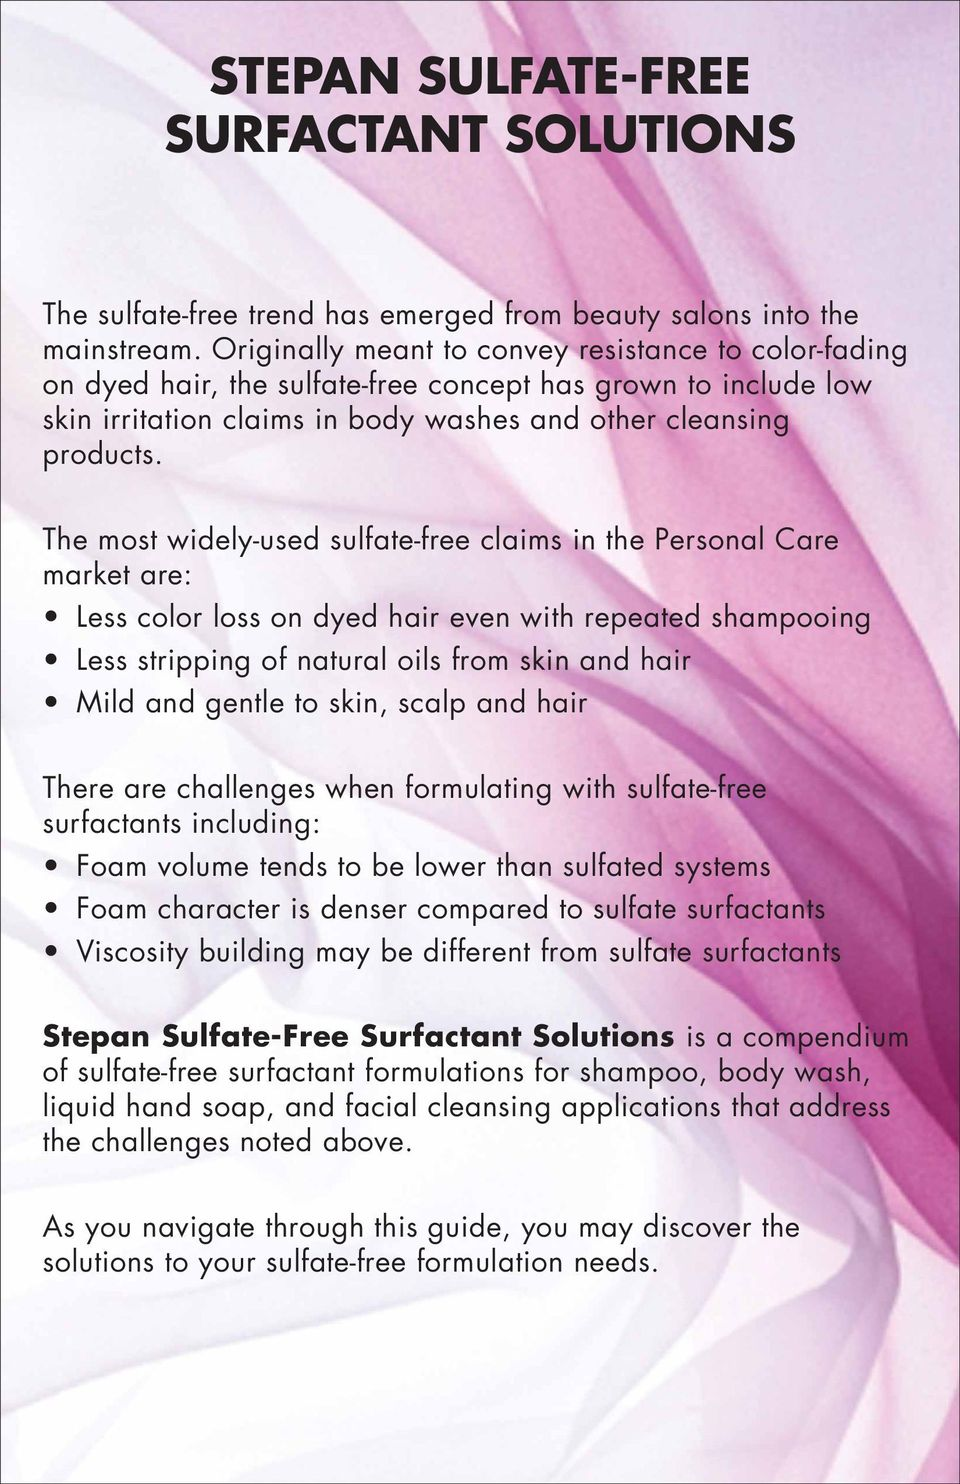 STEPAN SULFATE-FREE SURFACTANT SOLUTIONS - PDF